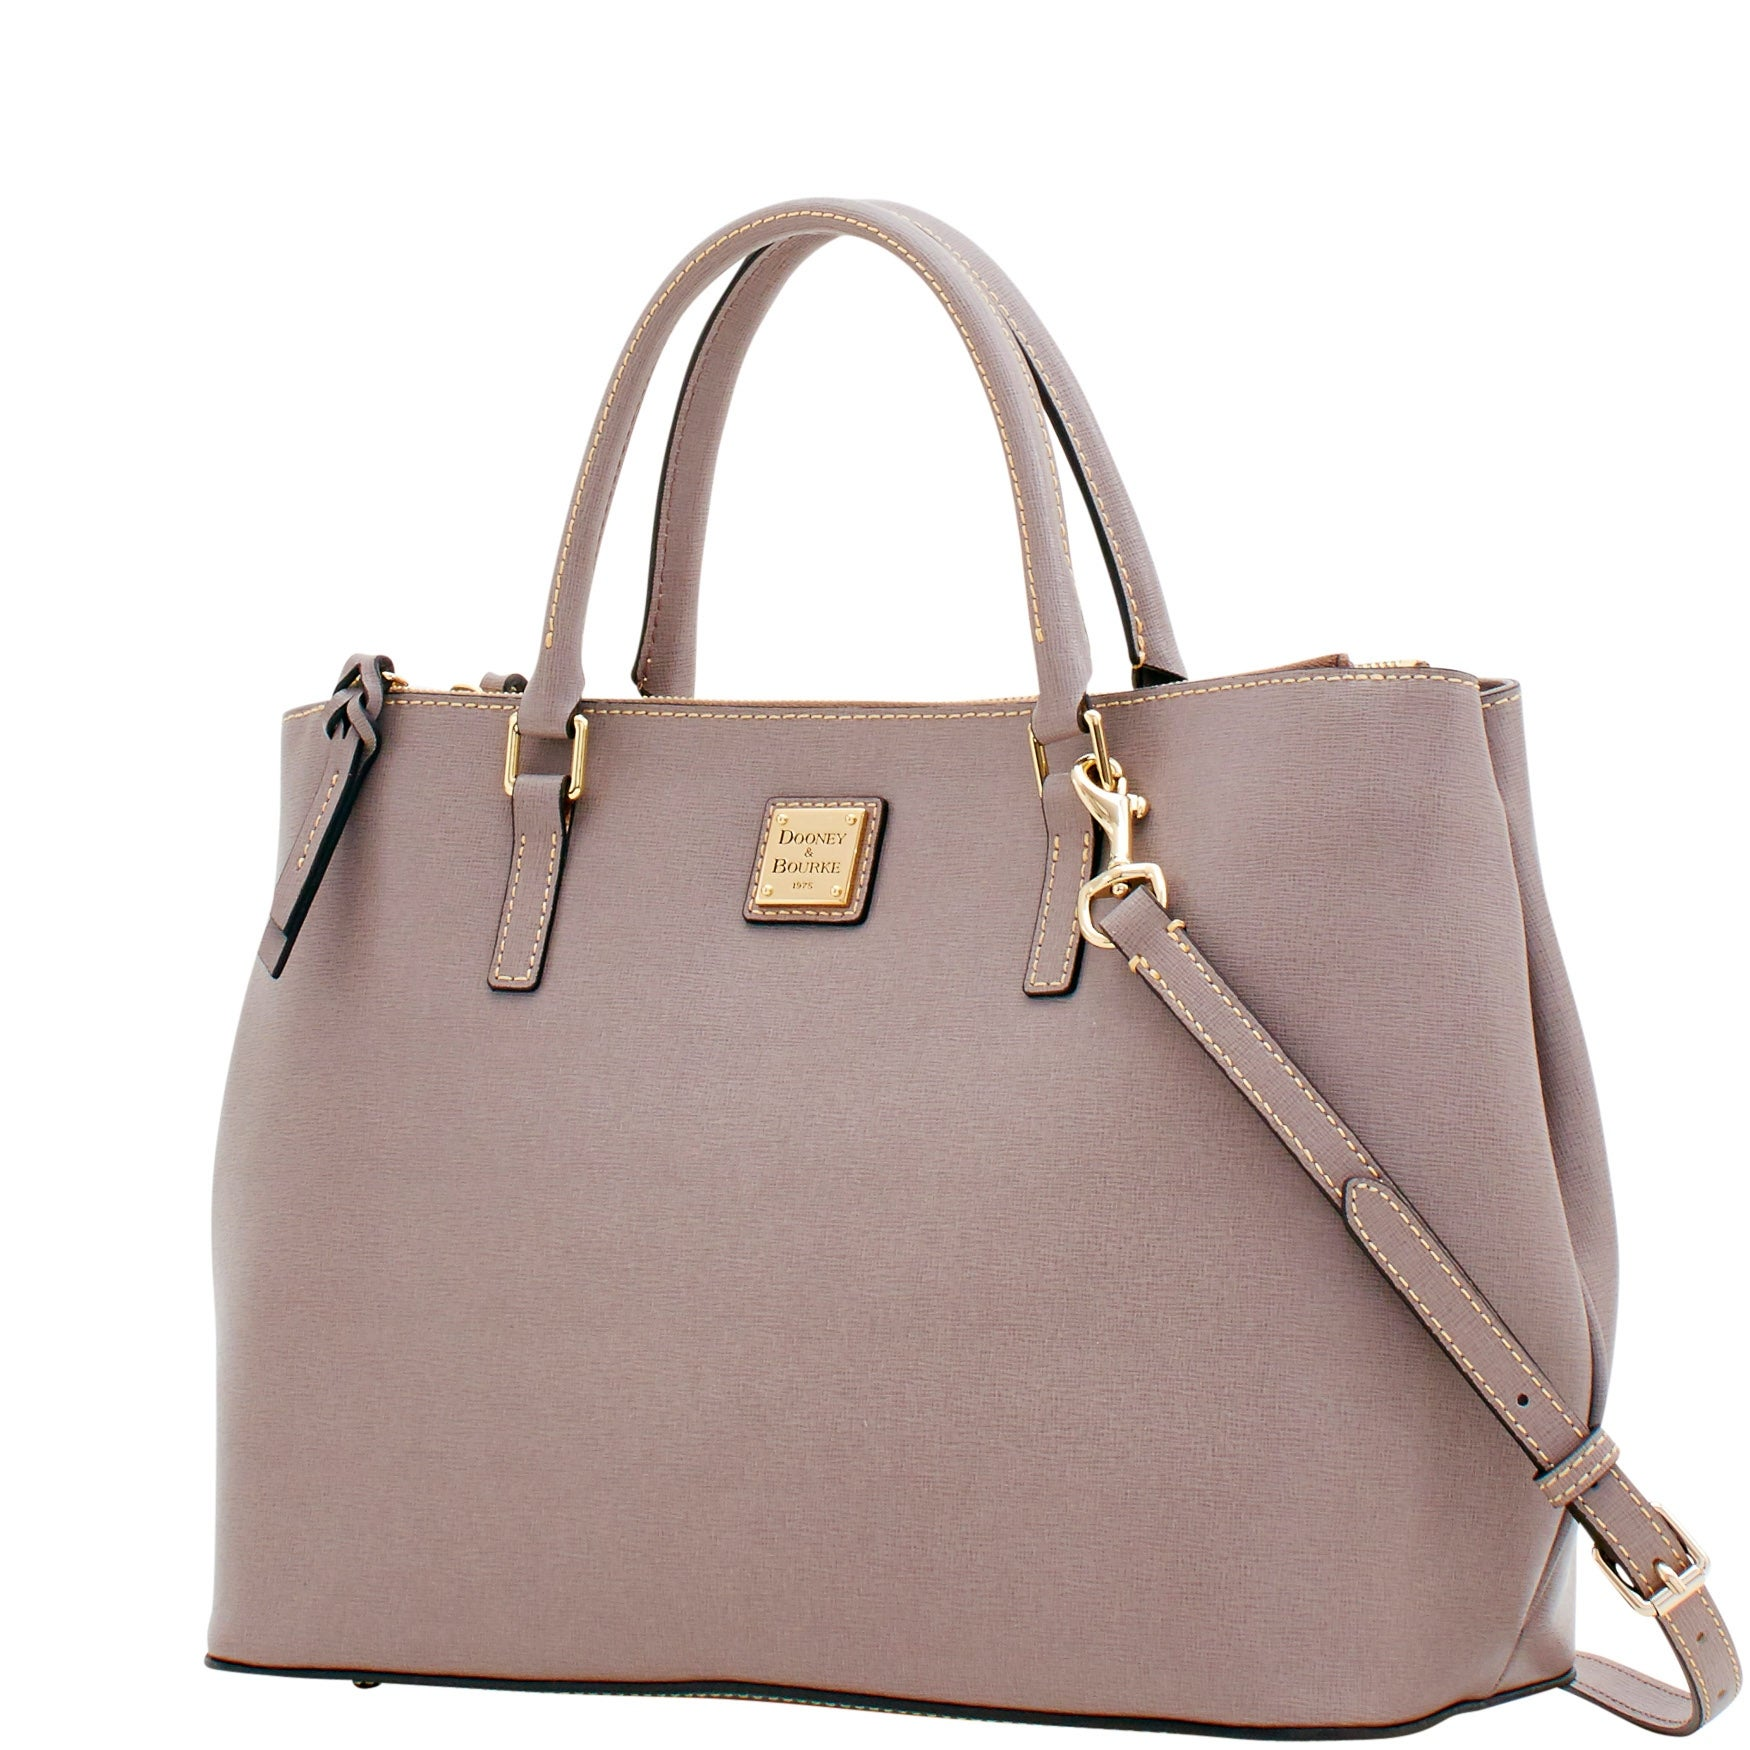 7b73d661e Shop Dooney   Bourke Saffiano Willa Zip Satchel (Introduced by Dooney    Bourke at  298 in Feb 2018) - Free Shipping Today - Overstock.com - 20122013